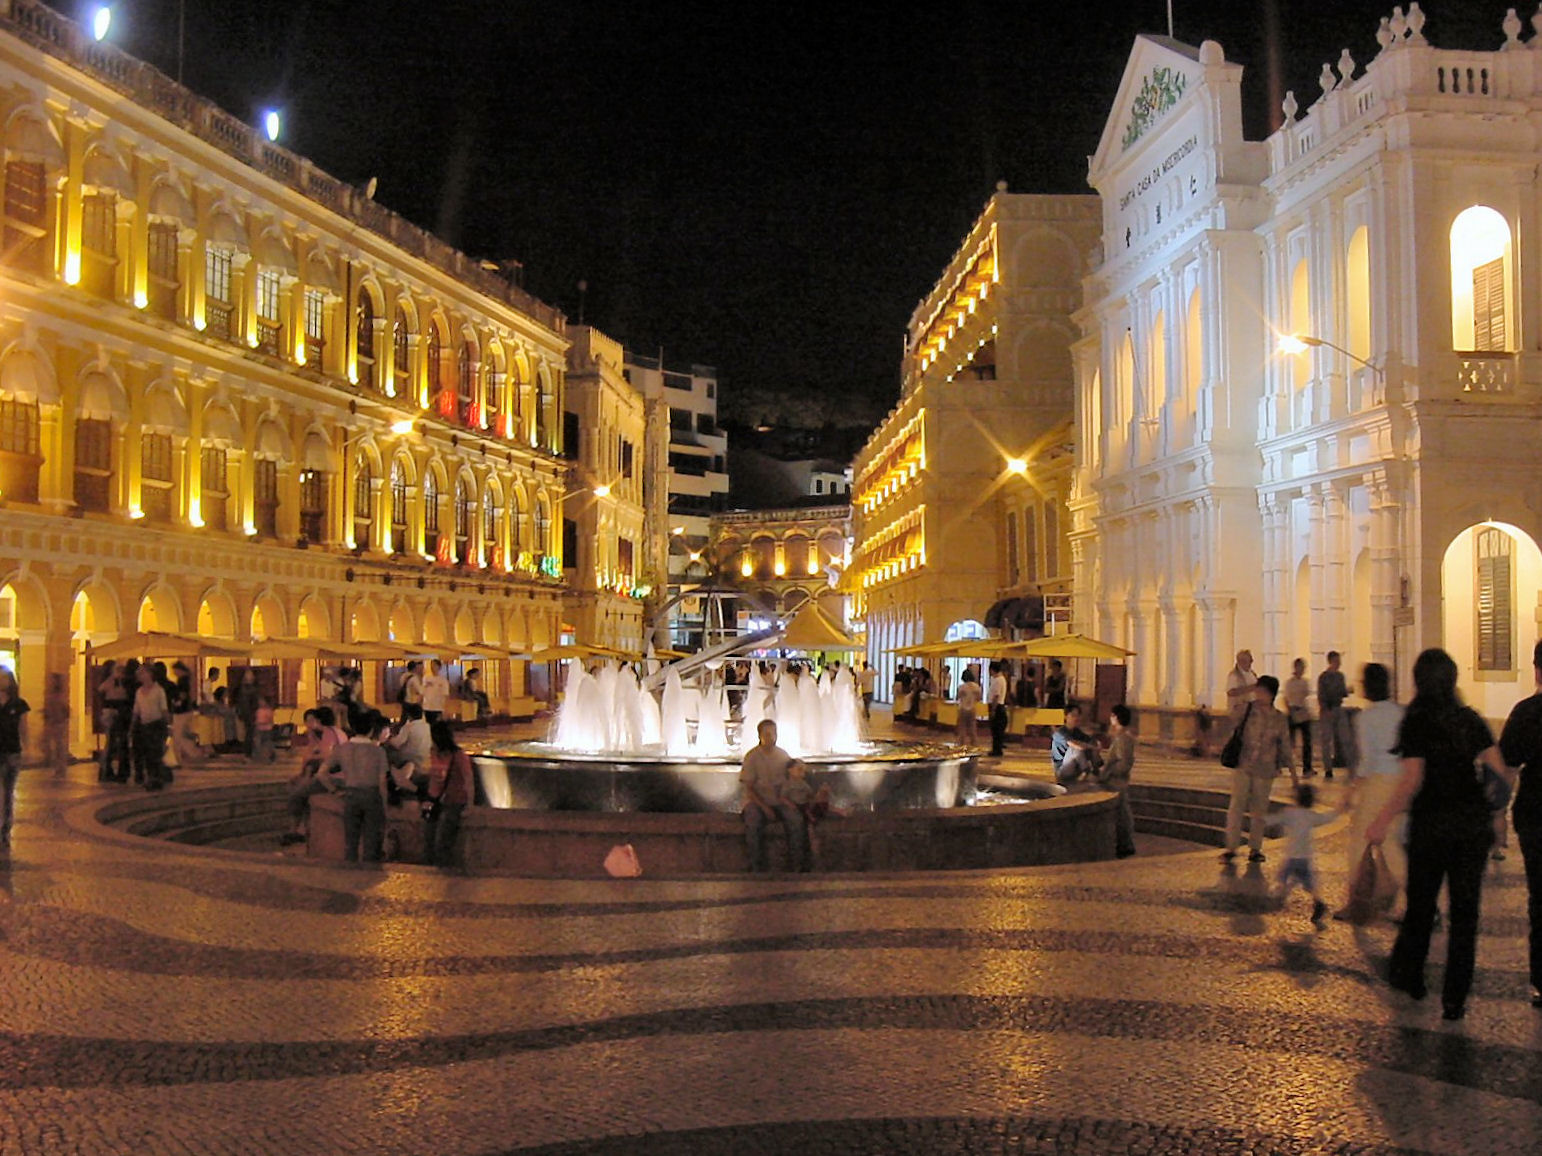 Macau_Senate_Square_at_Night